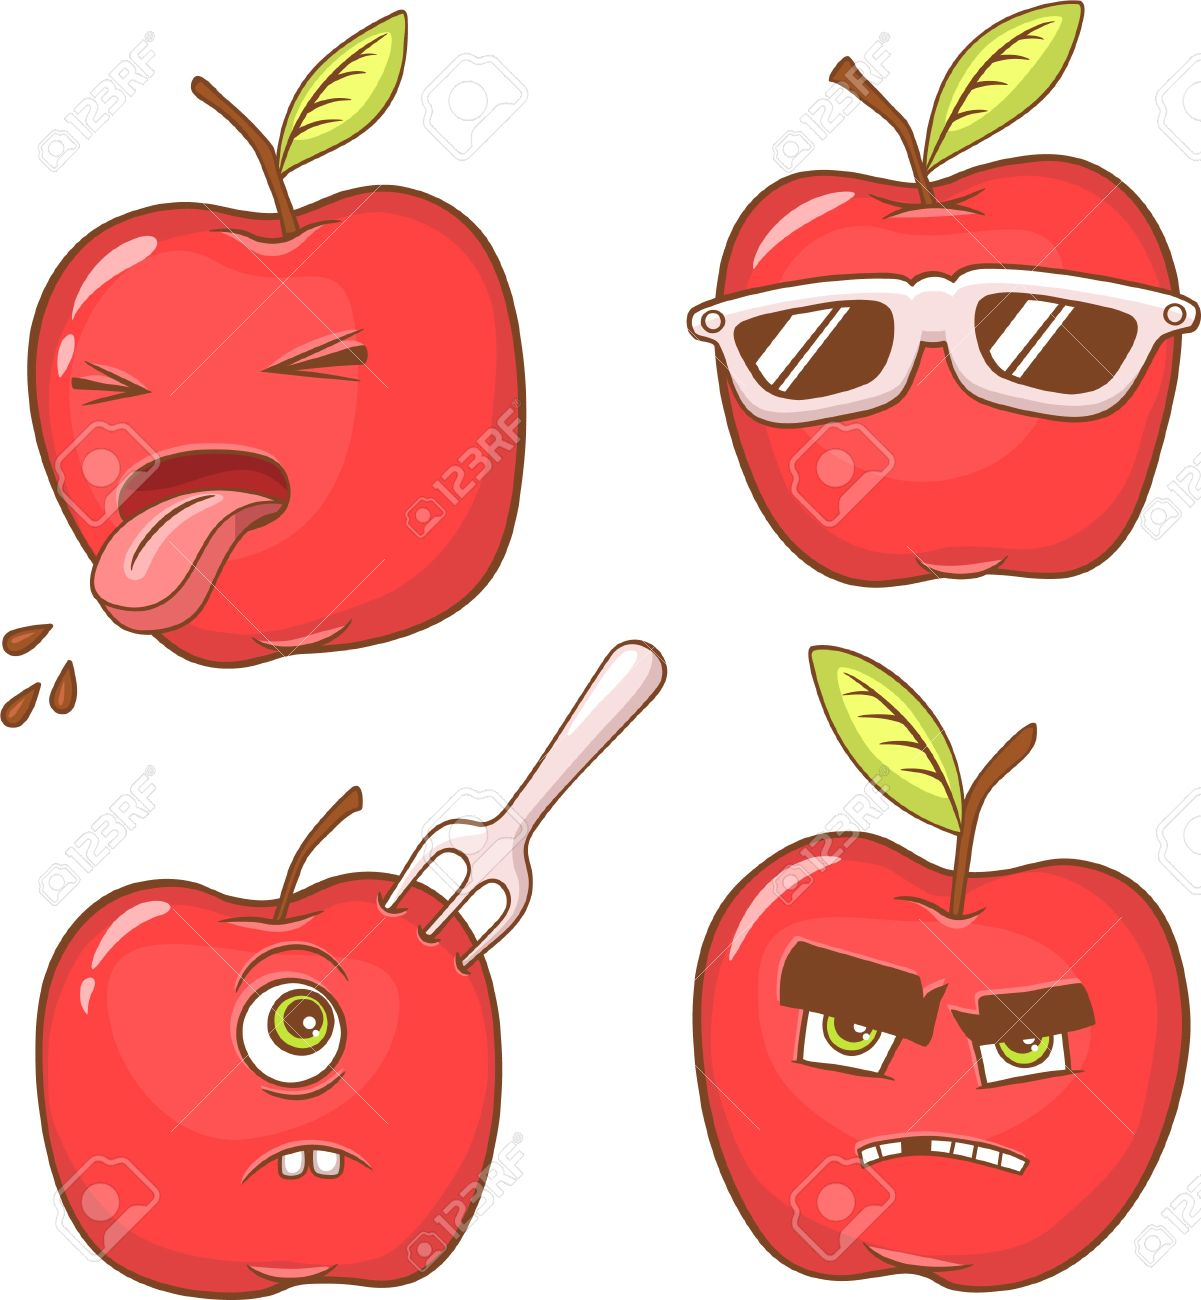 four red apples with diffrent emotions and faces royalty free